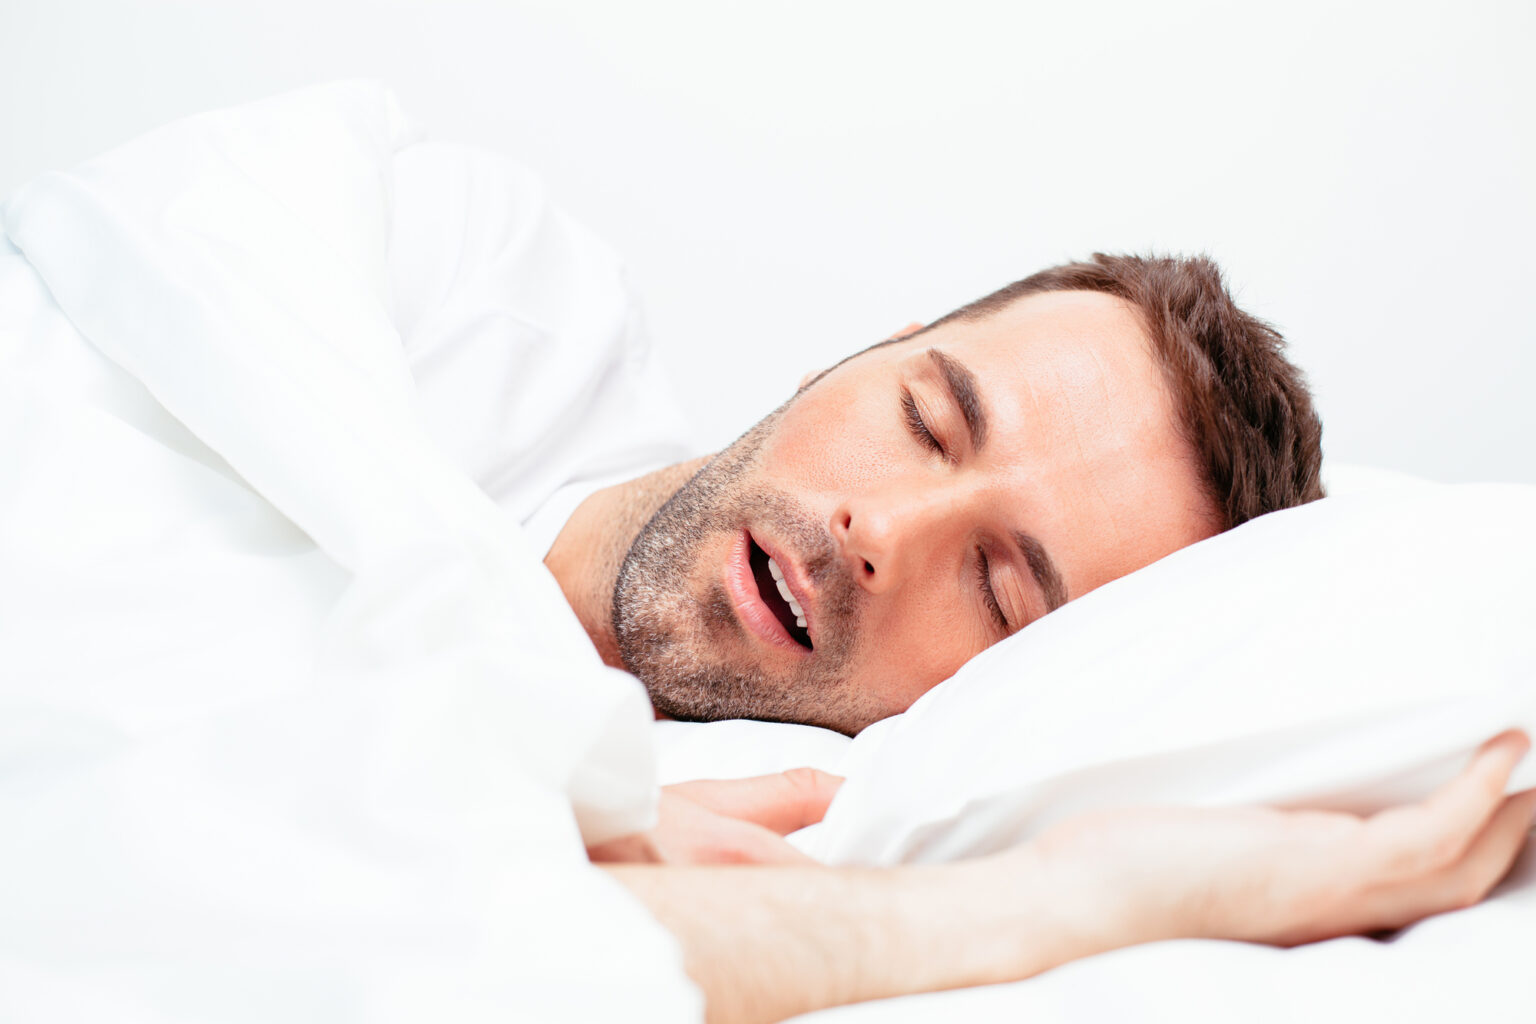 Dr. Mick Shares: Tips to Decrease Snoring